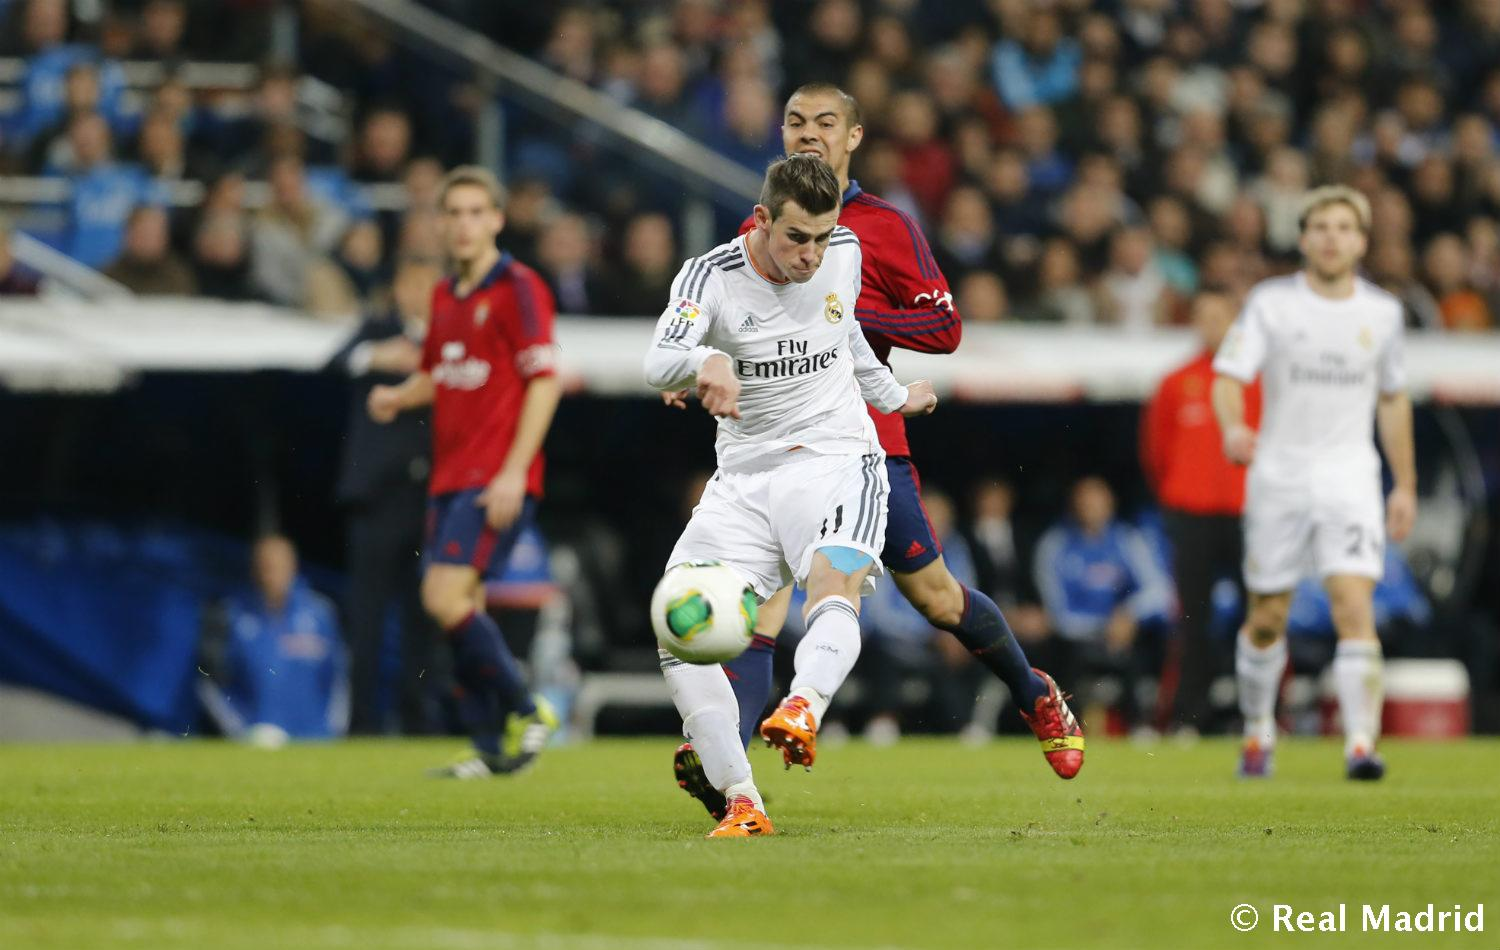 Real Madrid - Bale - 27-01-2014